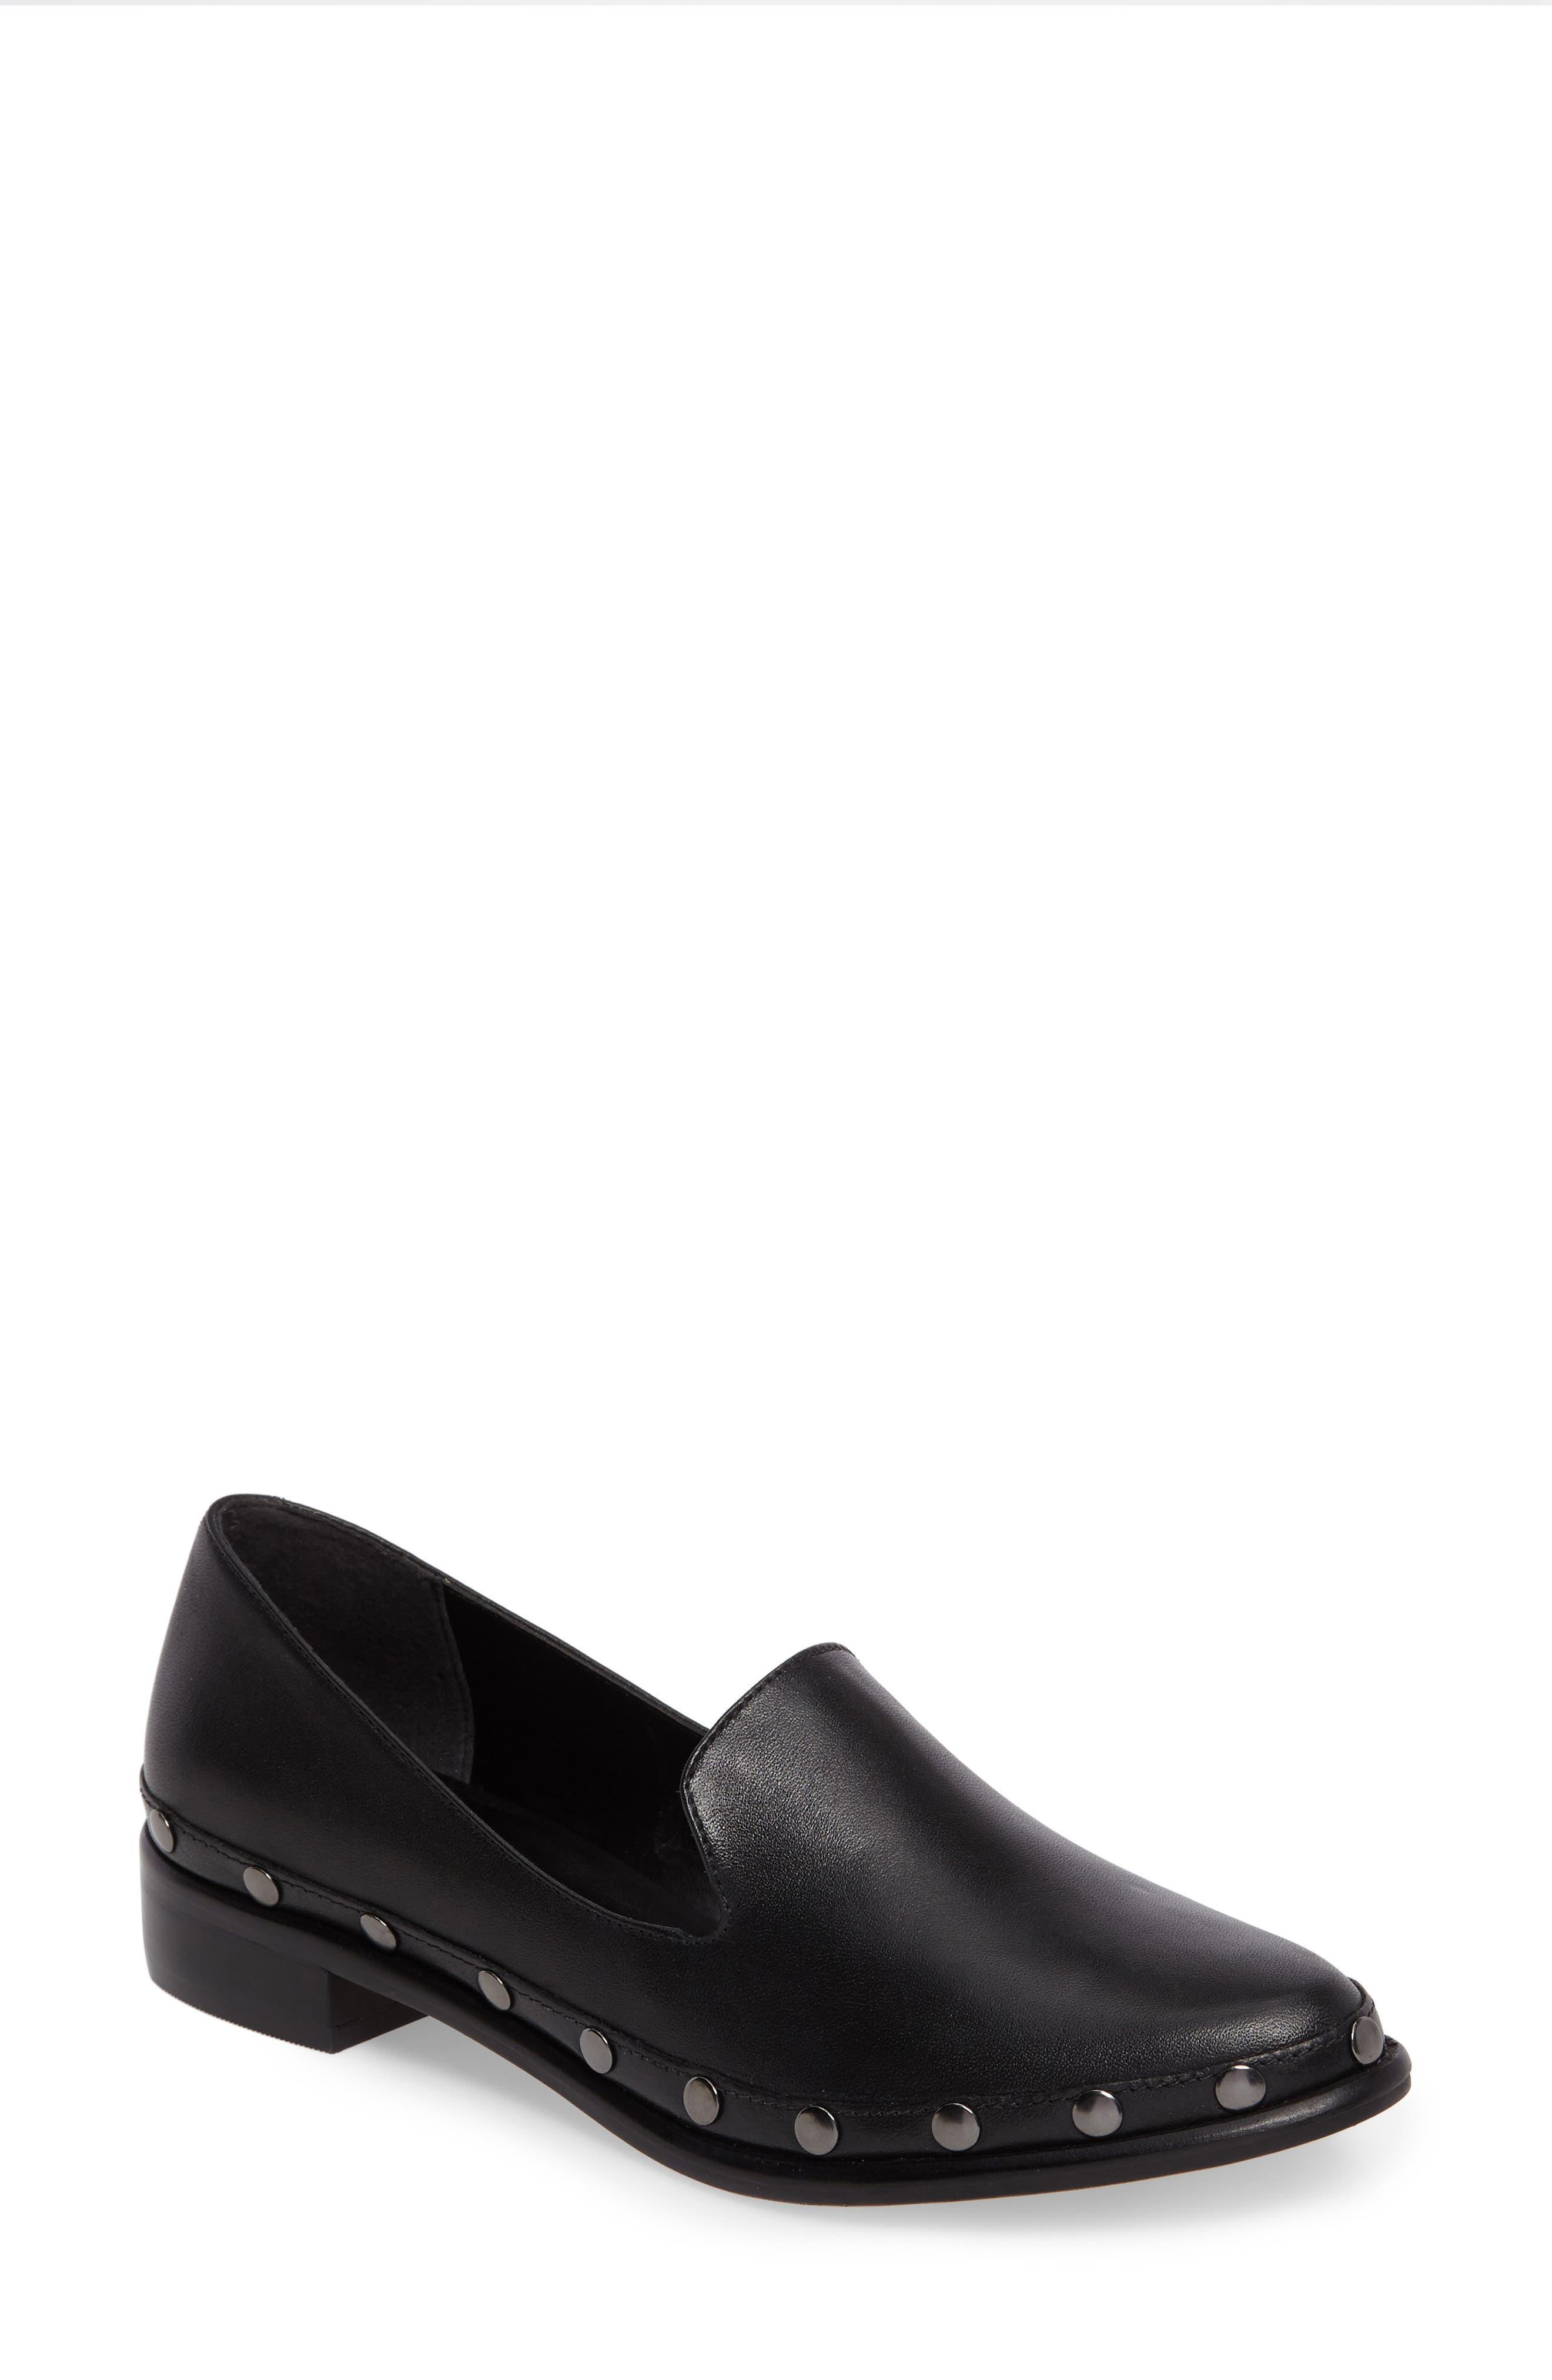 M4D3 Oceania Loafer,                         Main,                         color,